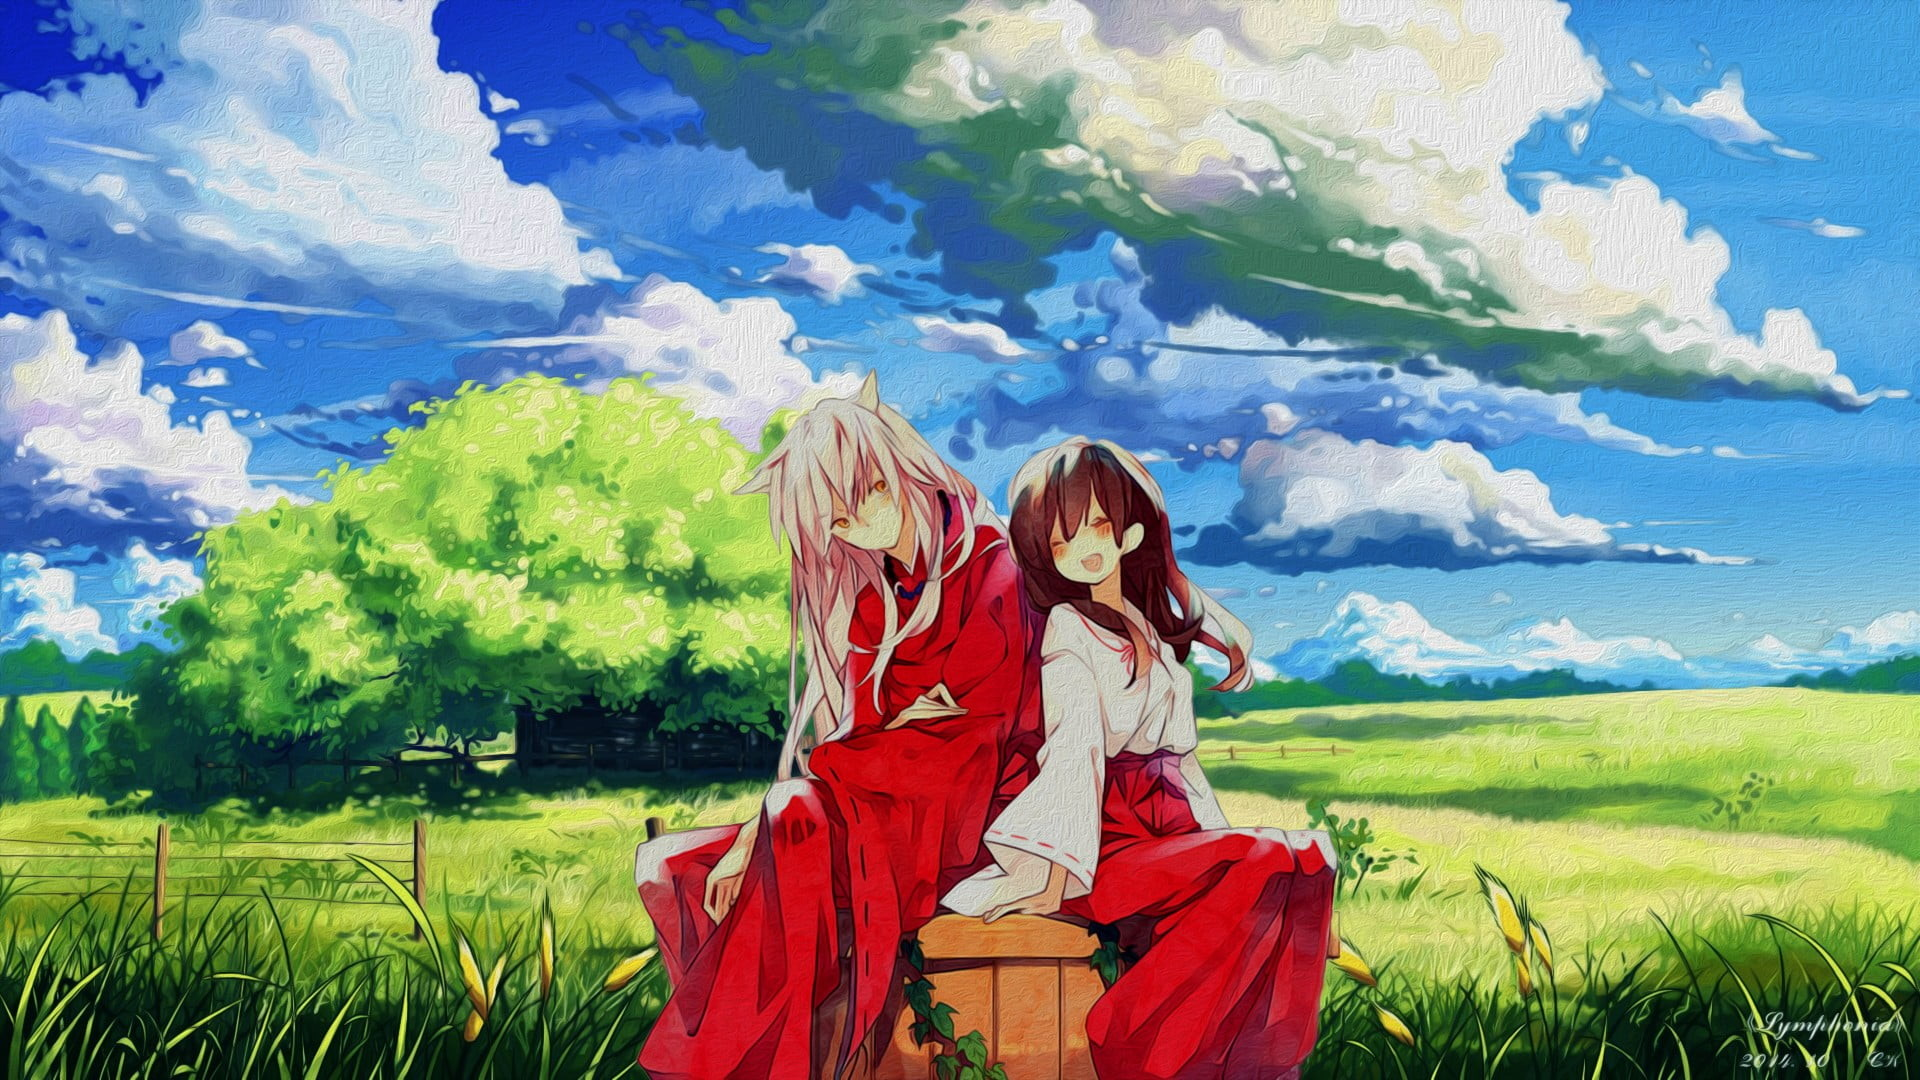 1920x1080 Inuyasha and Kikyo, anime, Inuyasha HD wallpaper